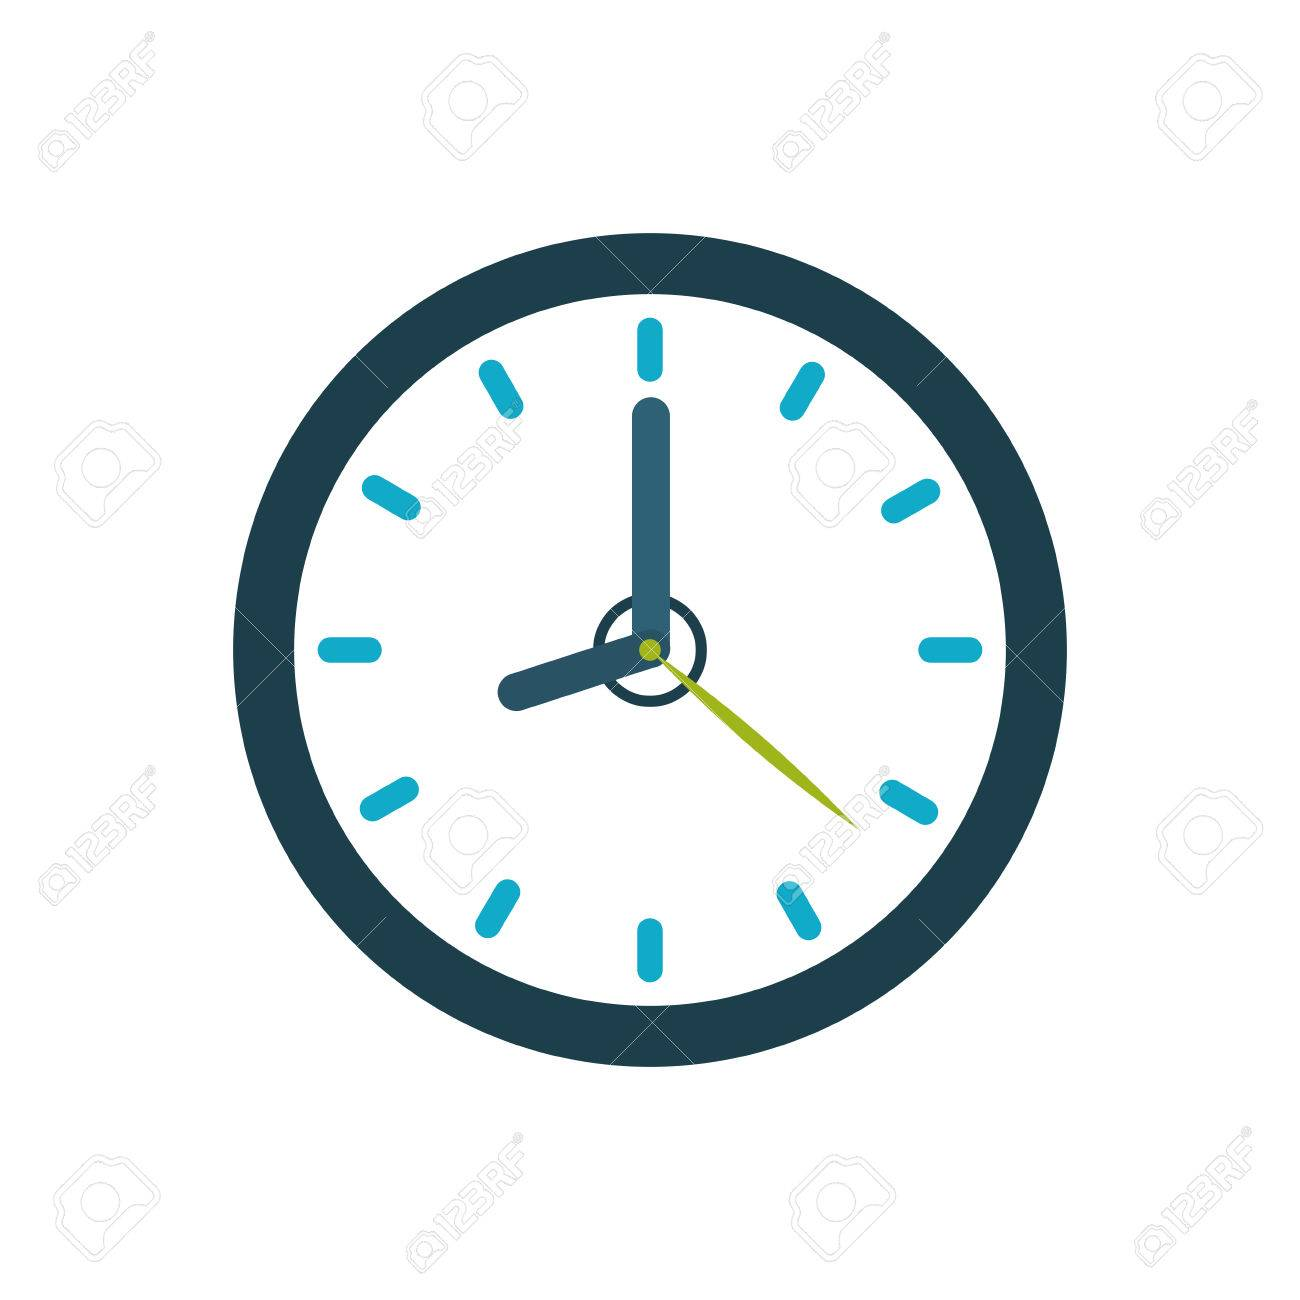 isolated time clock icon vector illustration graphic design royalty